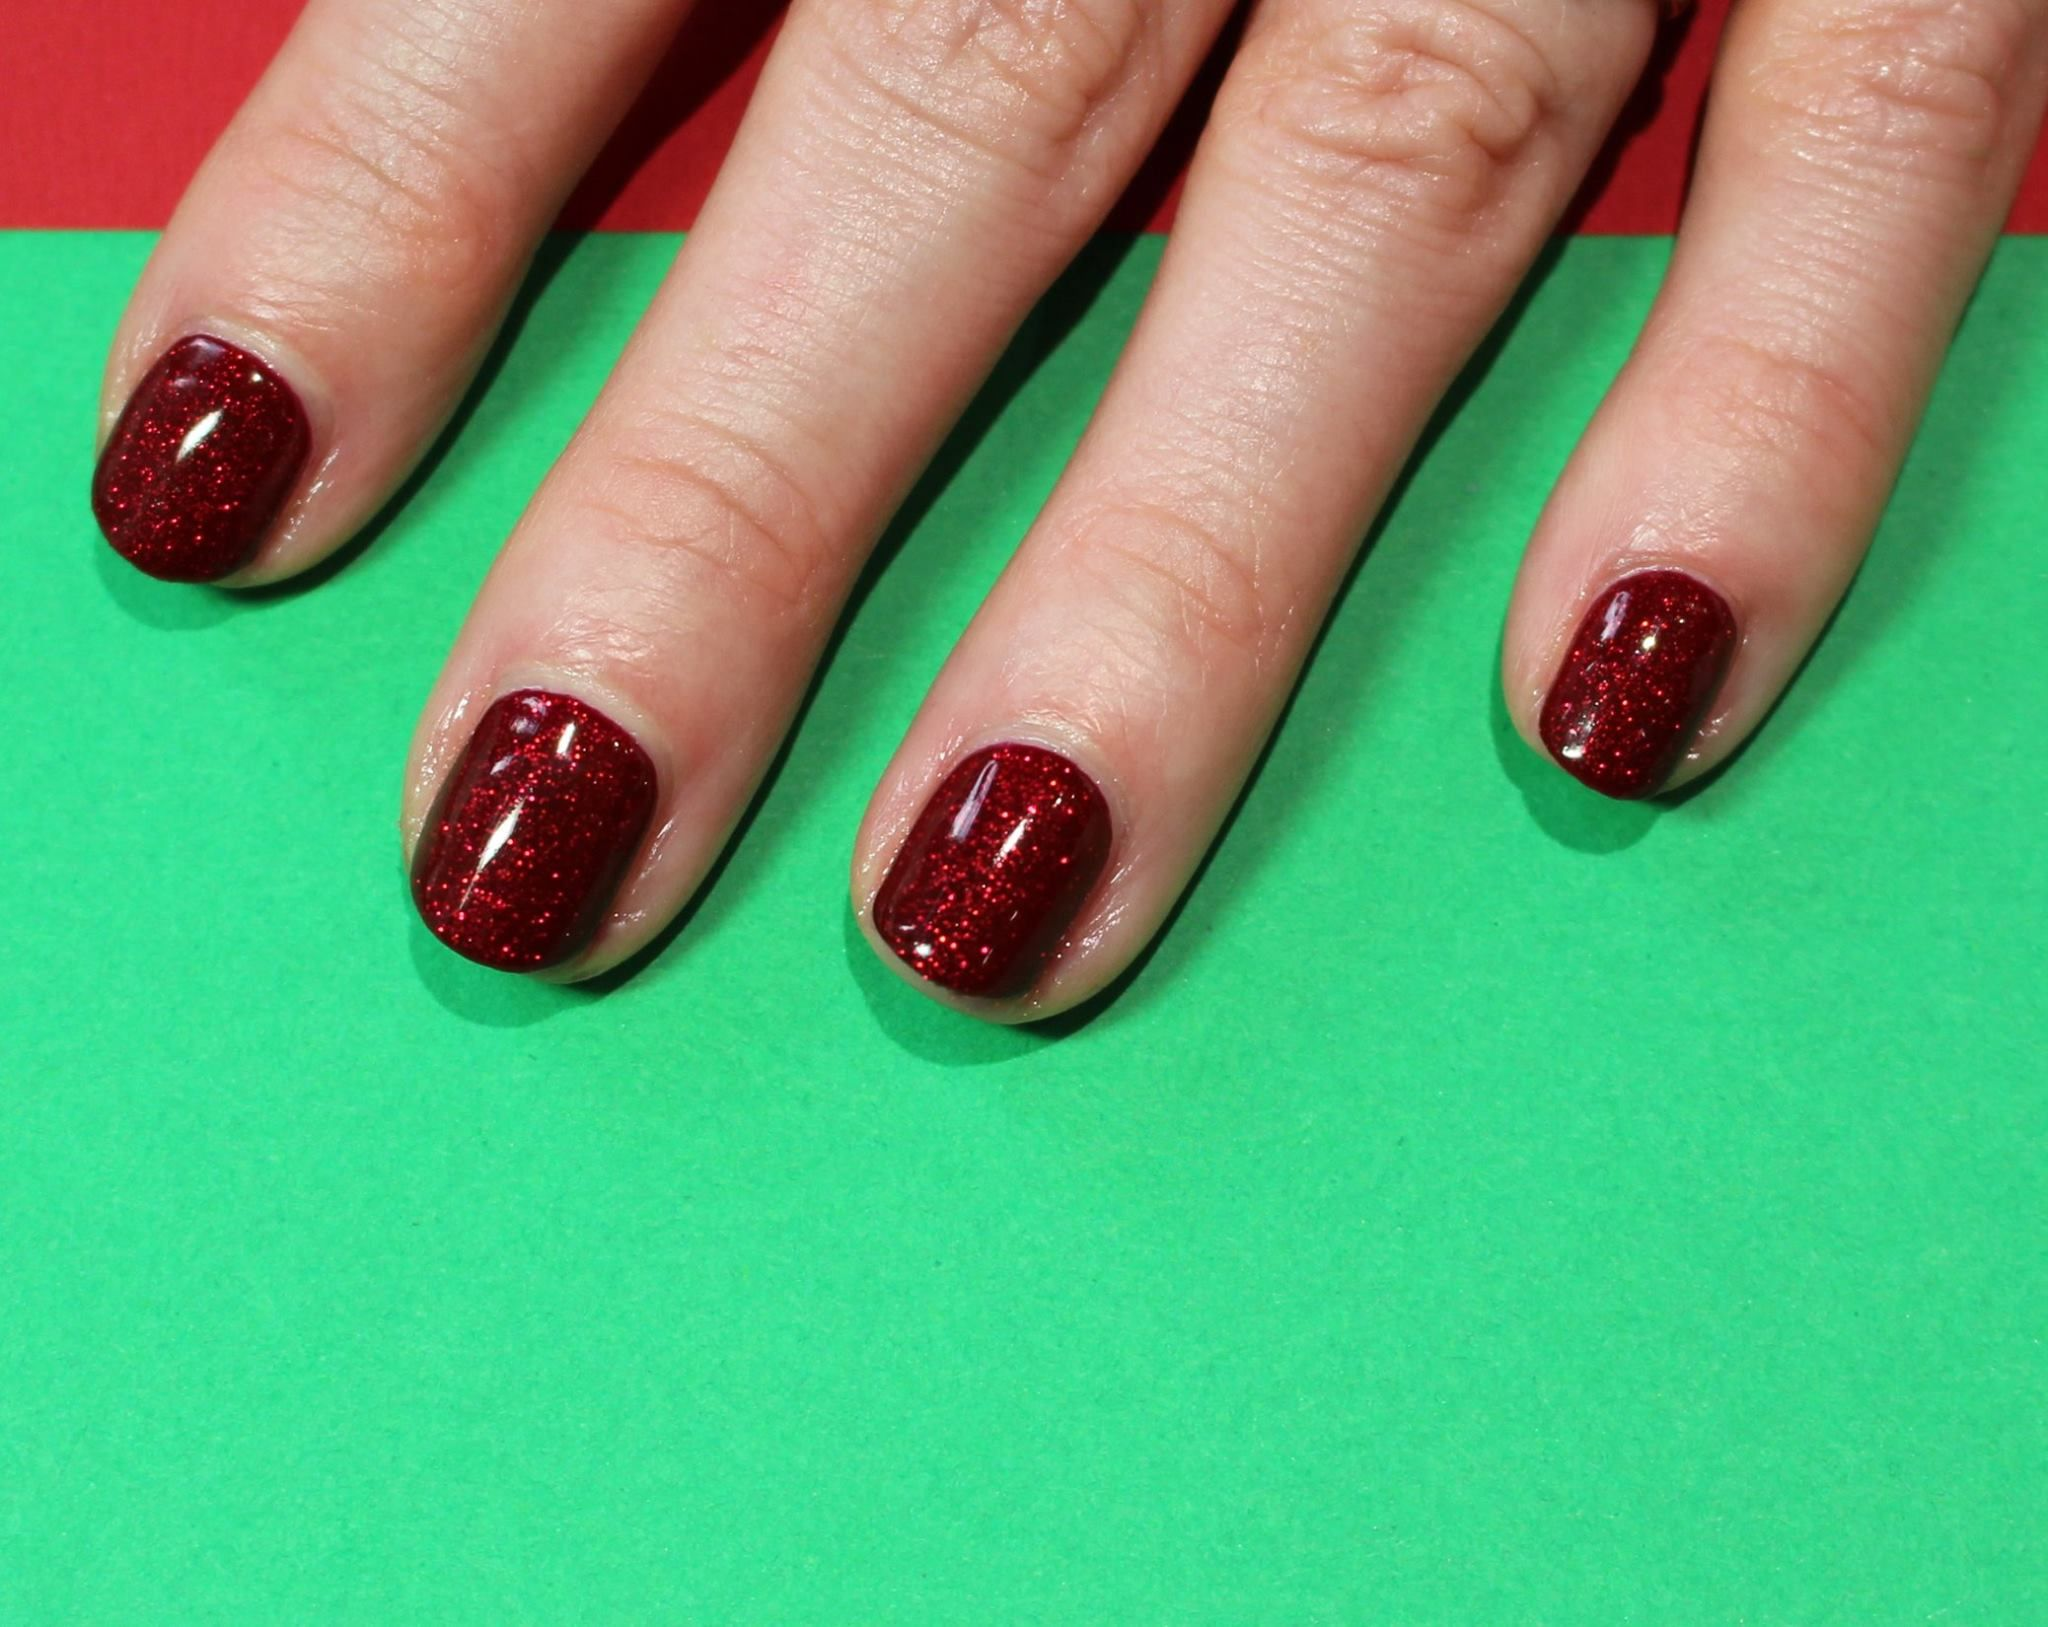 CND SHELLAC OXBLOOD AND RUBY RITZ | Nails | Pinterest